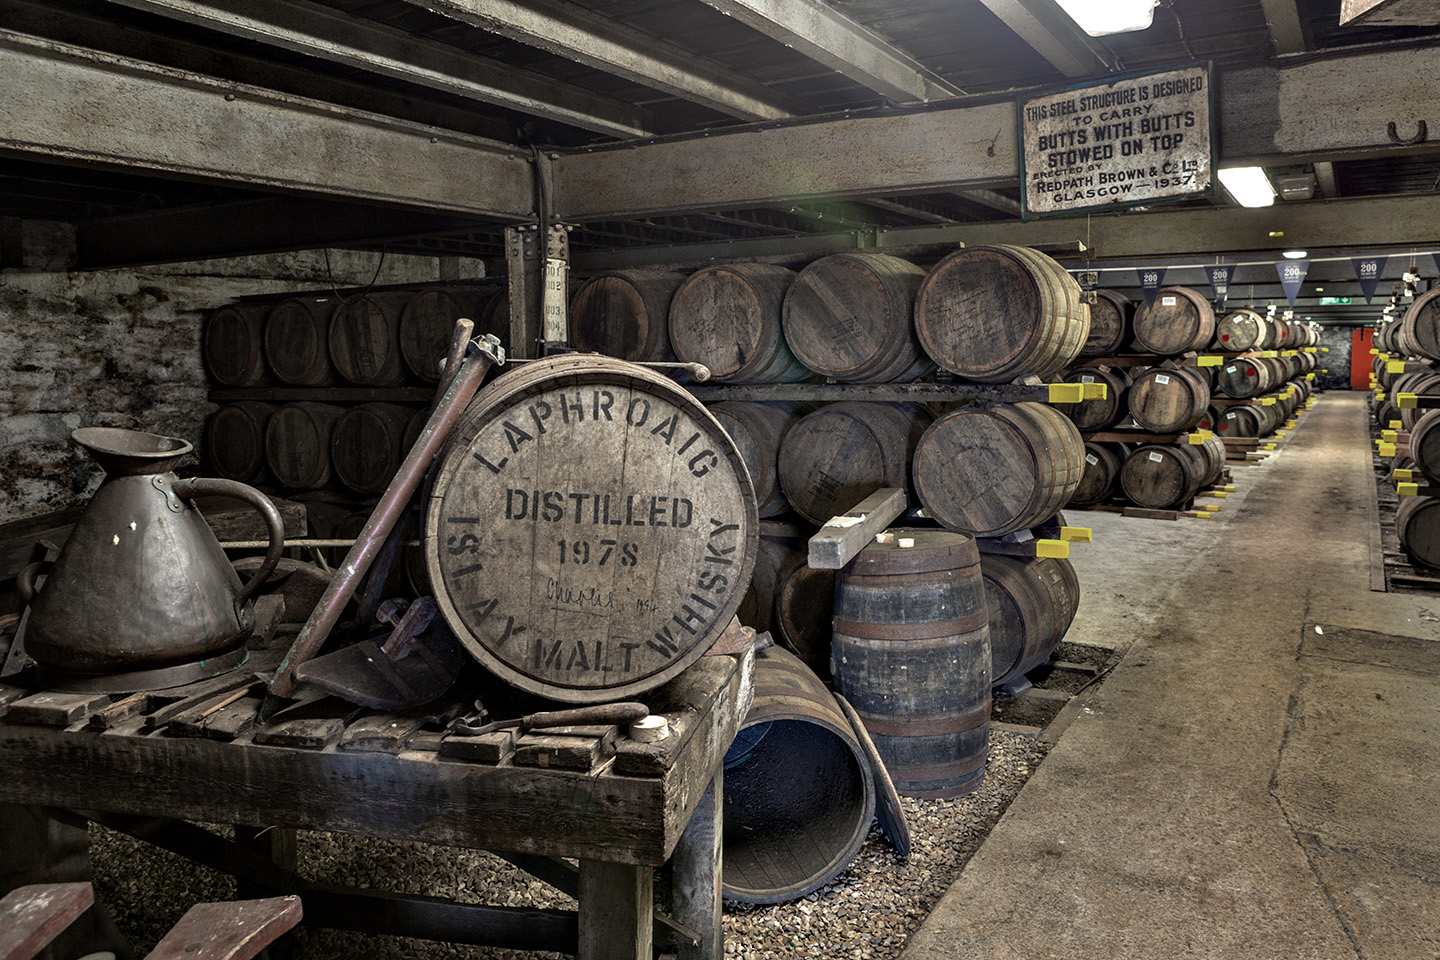 Laphroaig Whisky Casks Stored in Warehouse